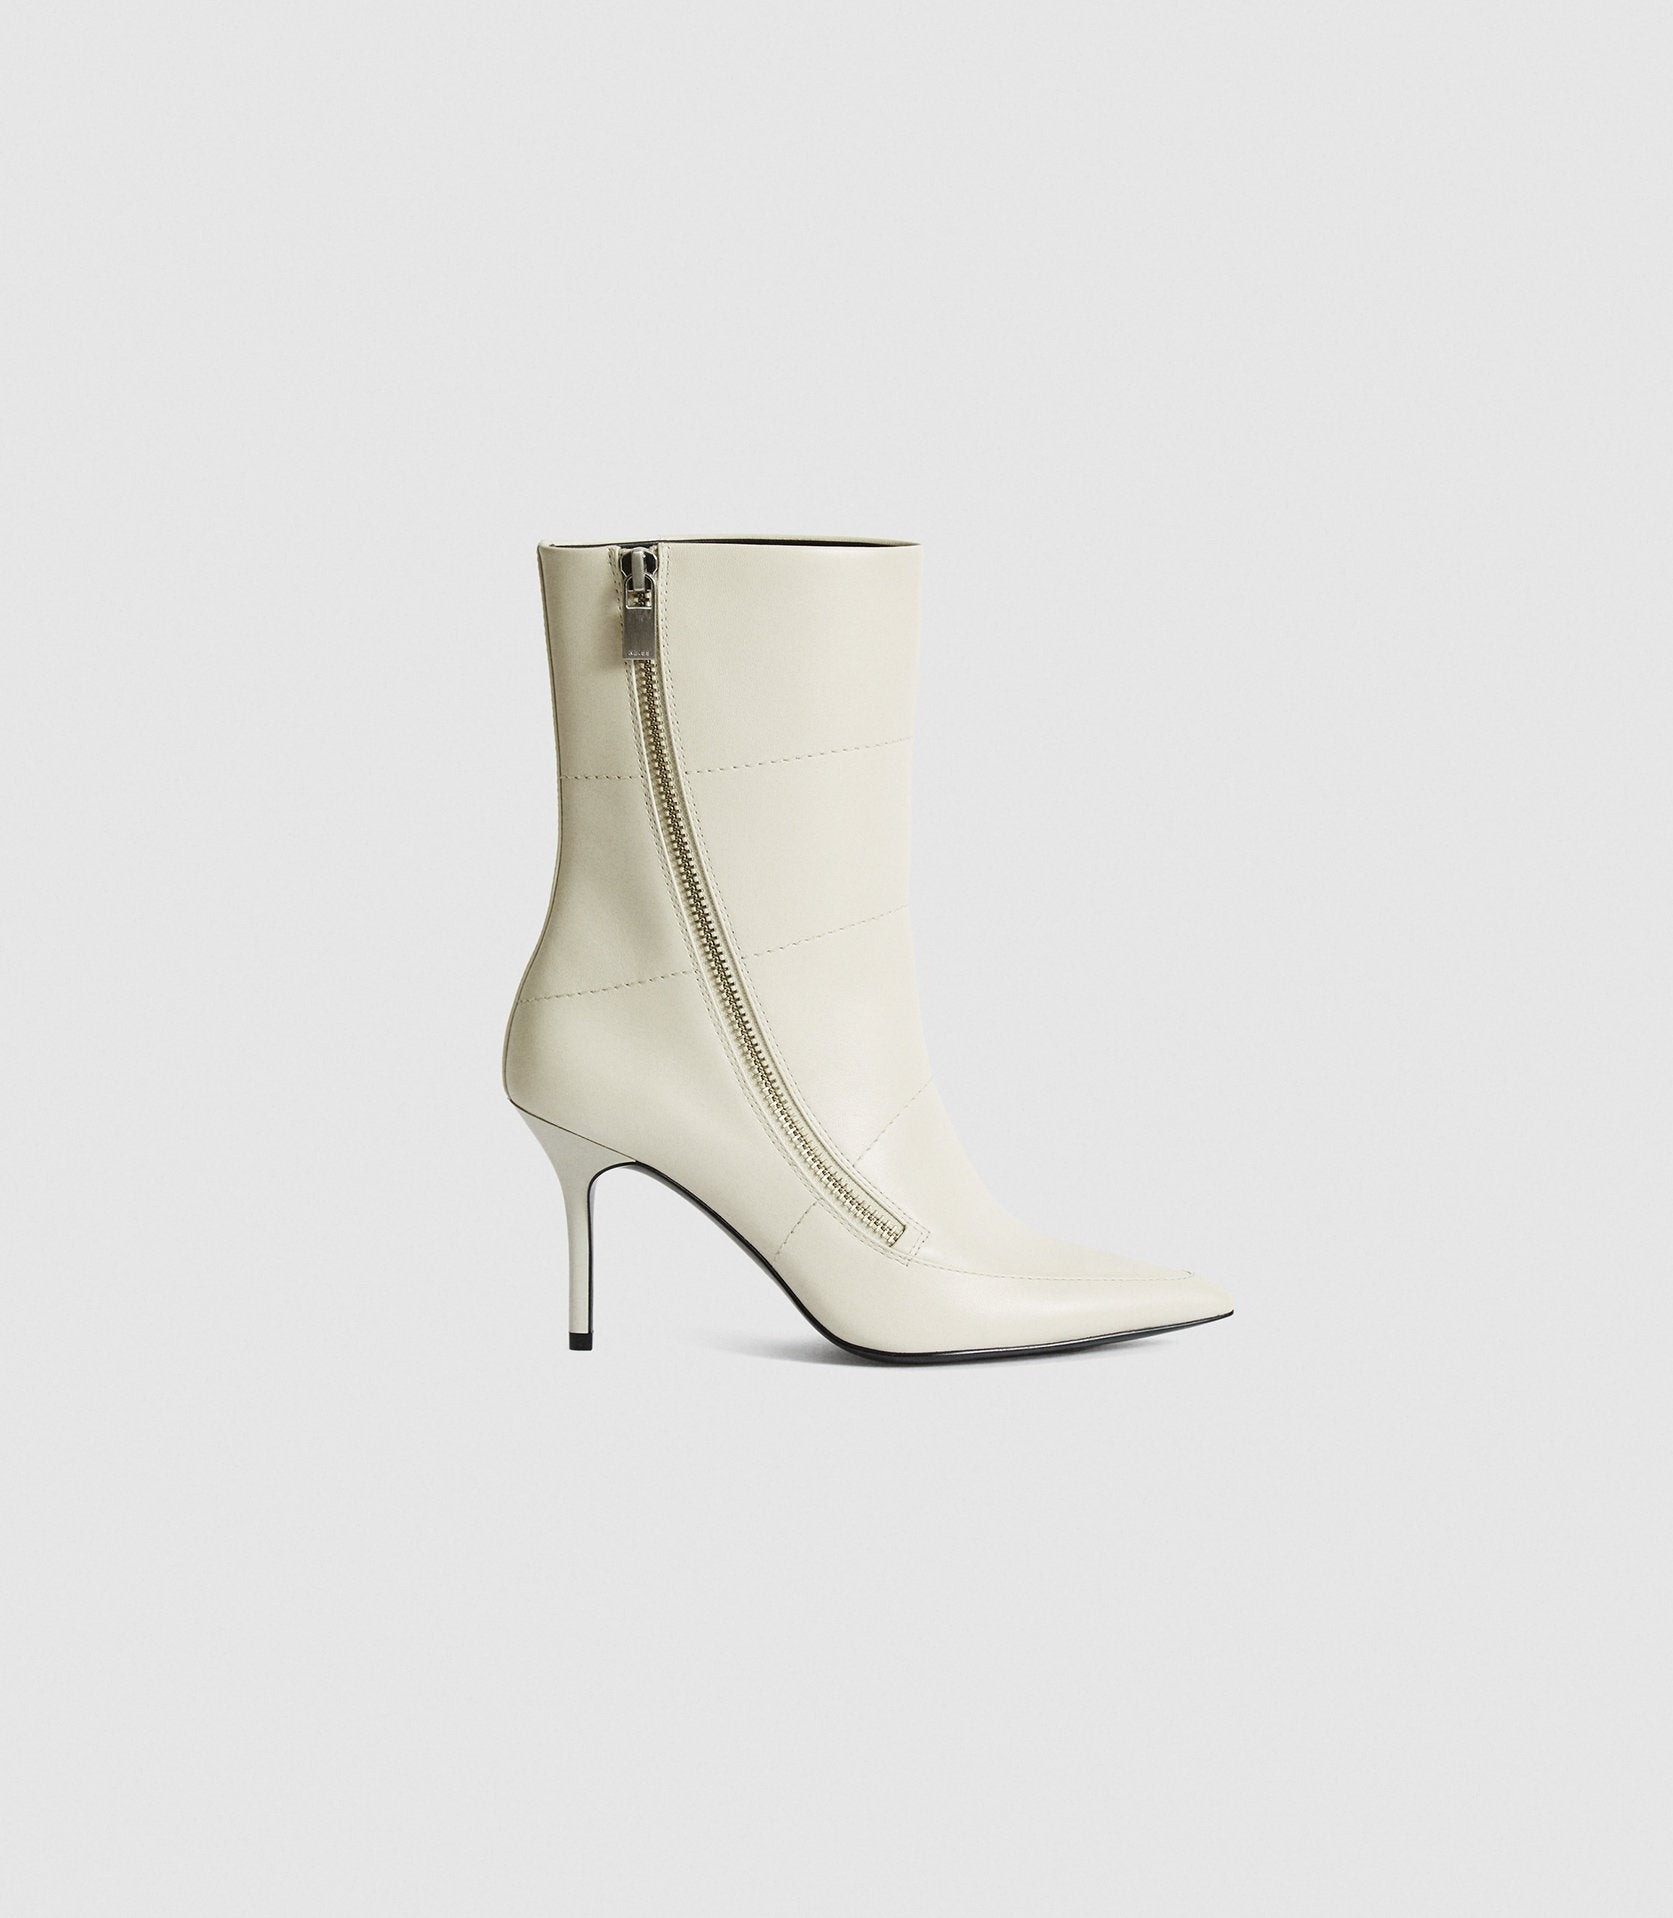 Reiss Hoxton - Leather Point-toe Off White, Womens, Size 3 Boot